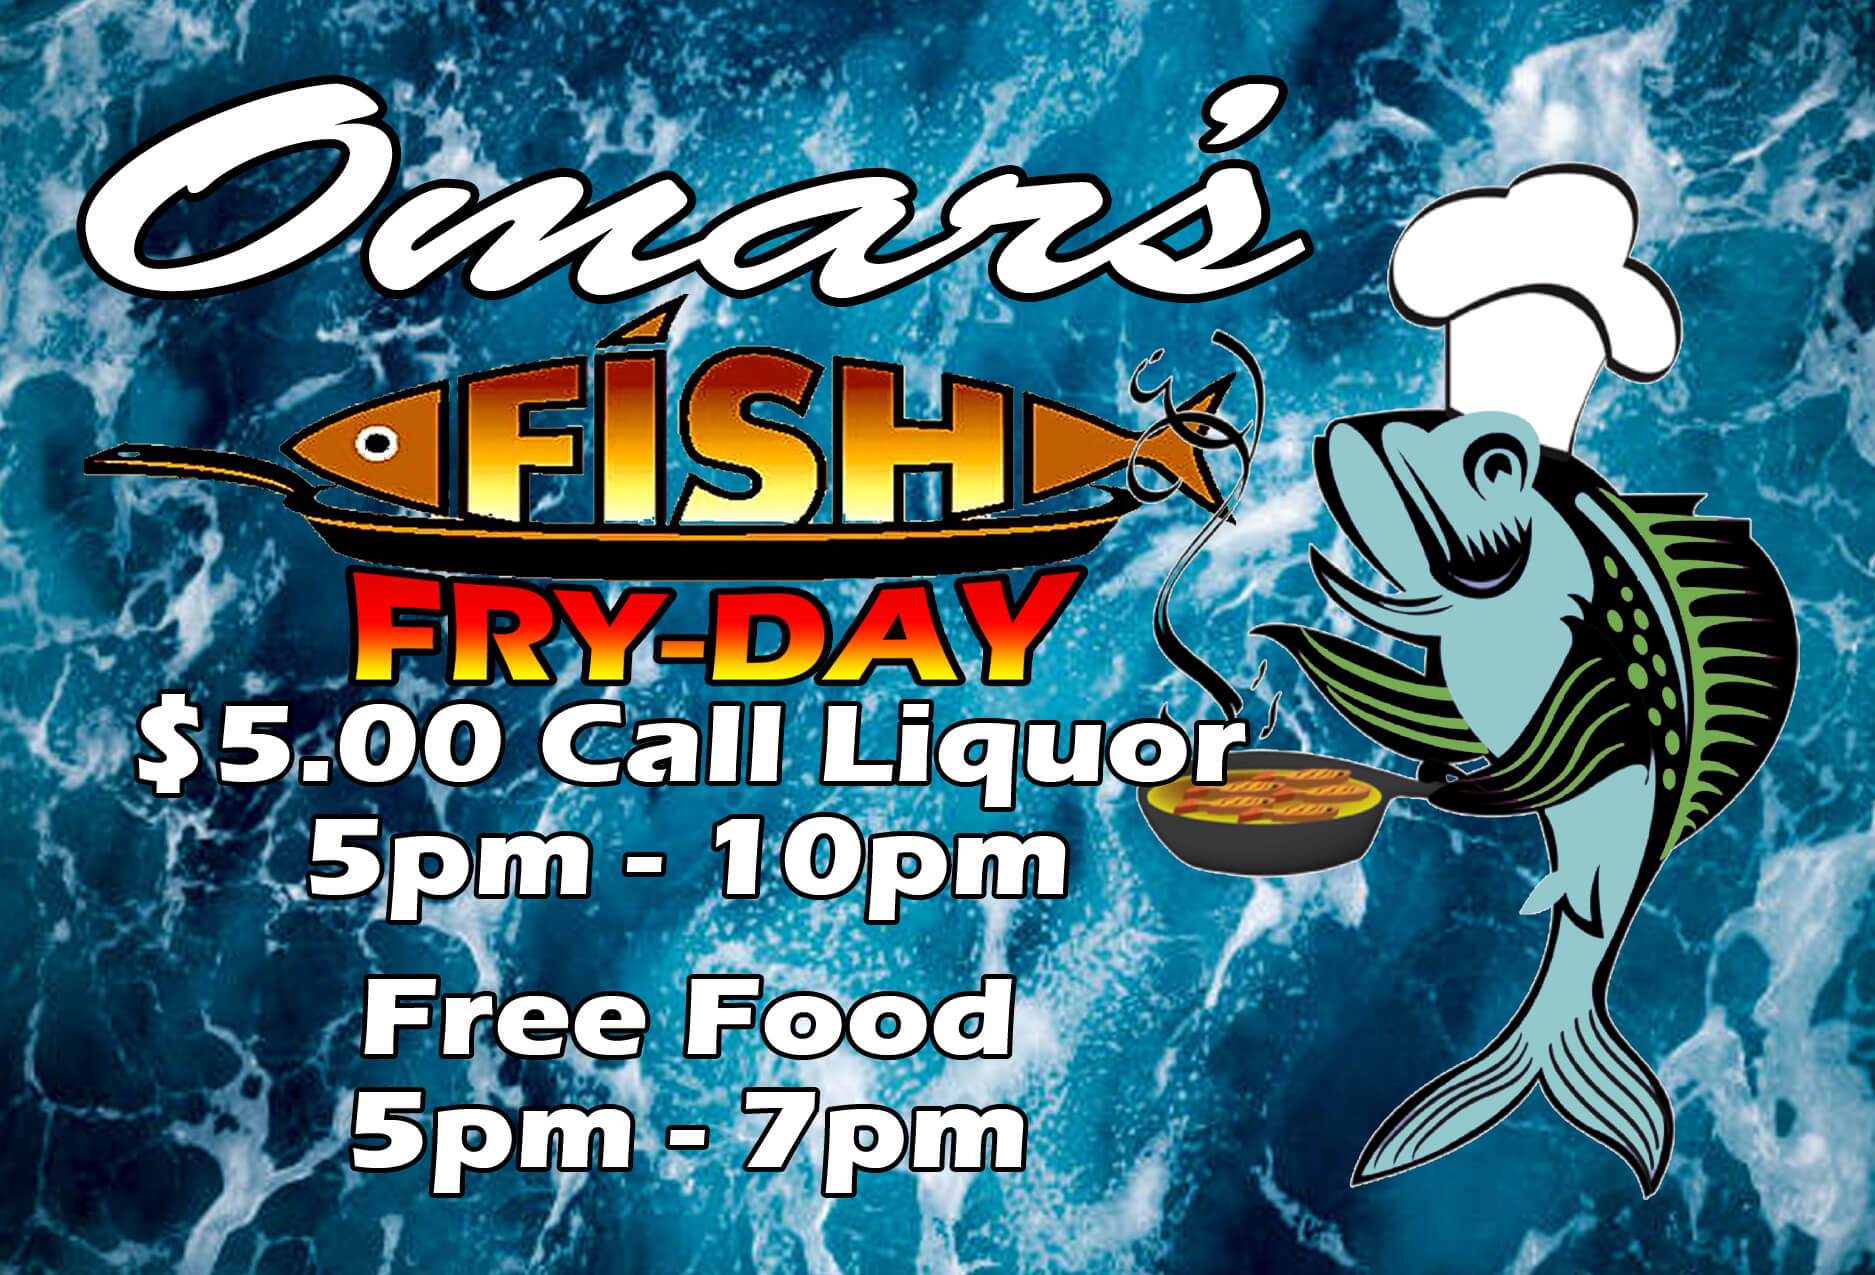 Omar's Fish Fry-Day